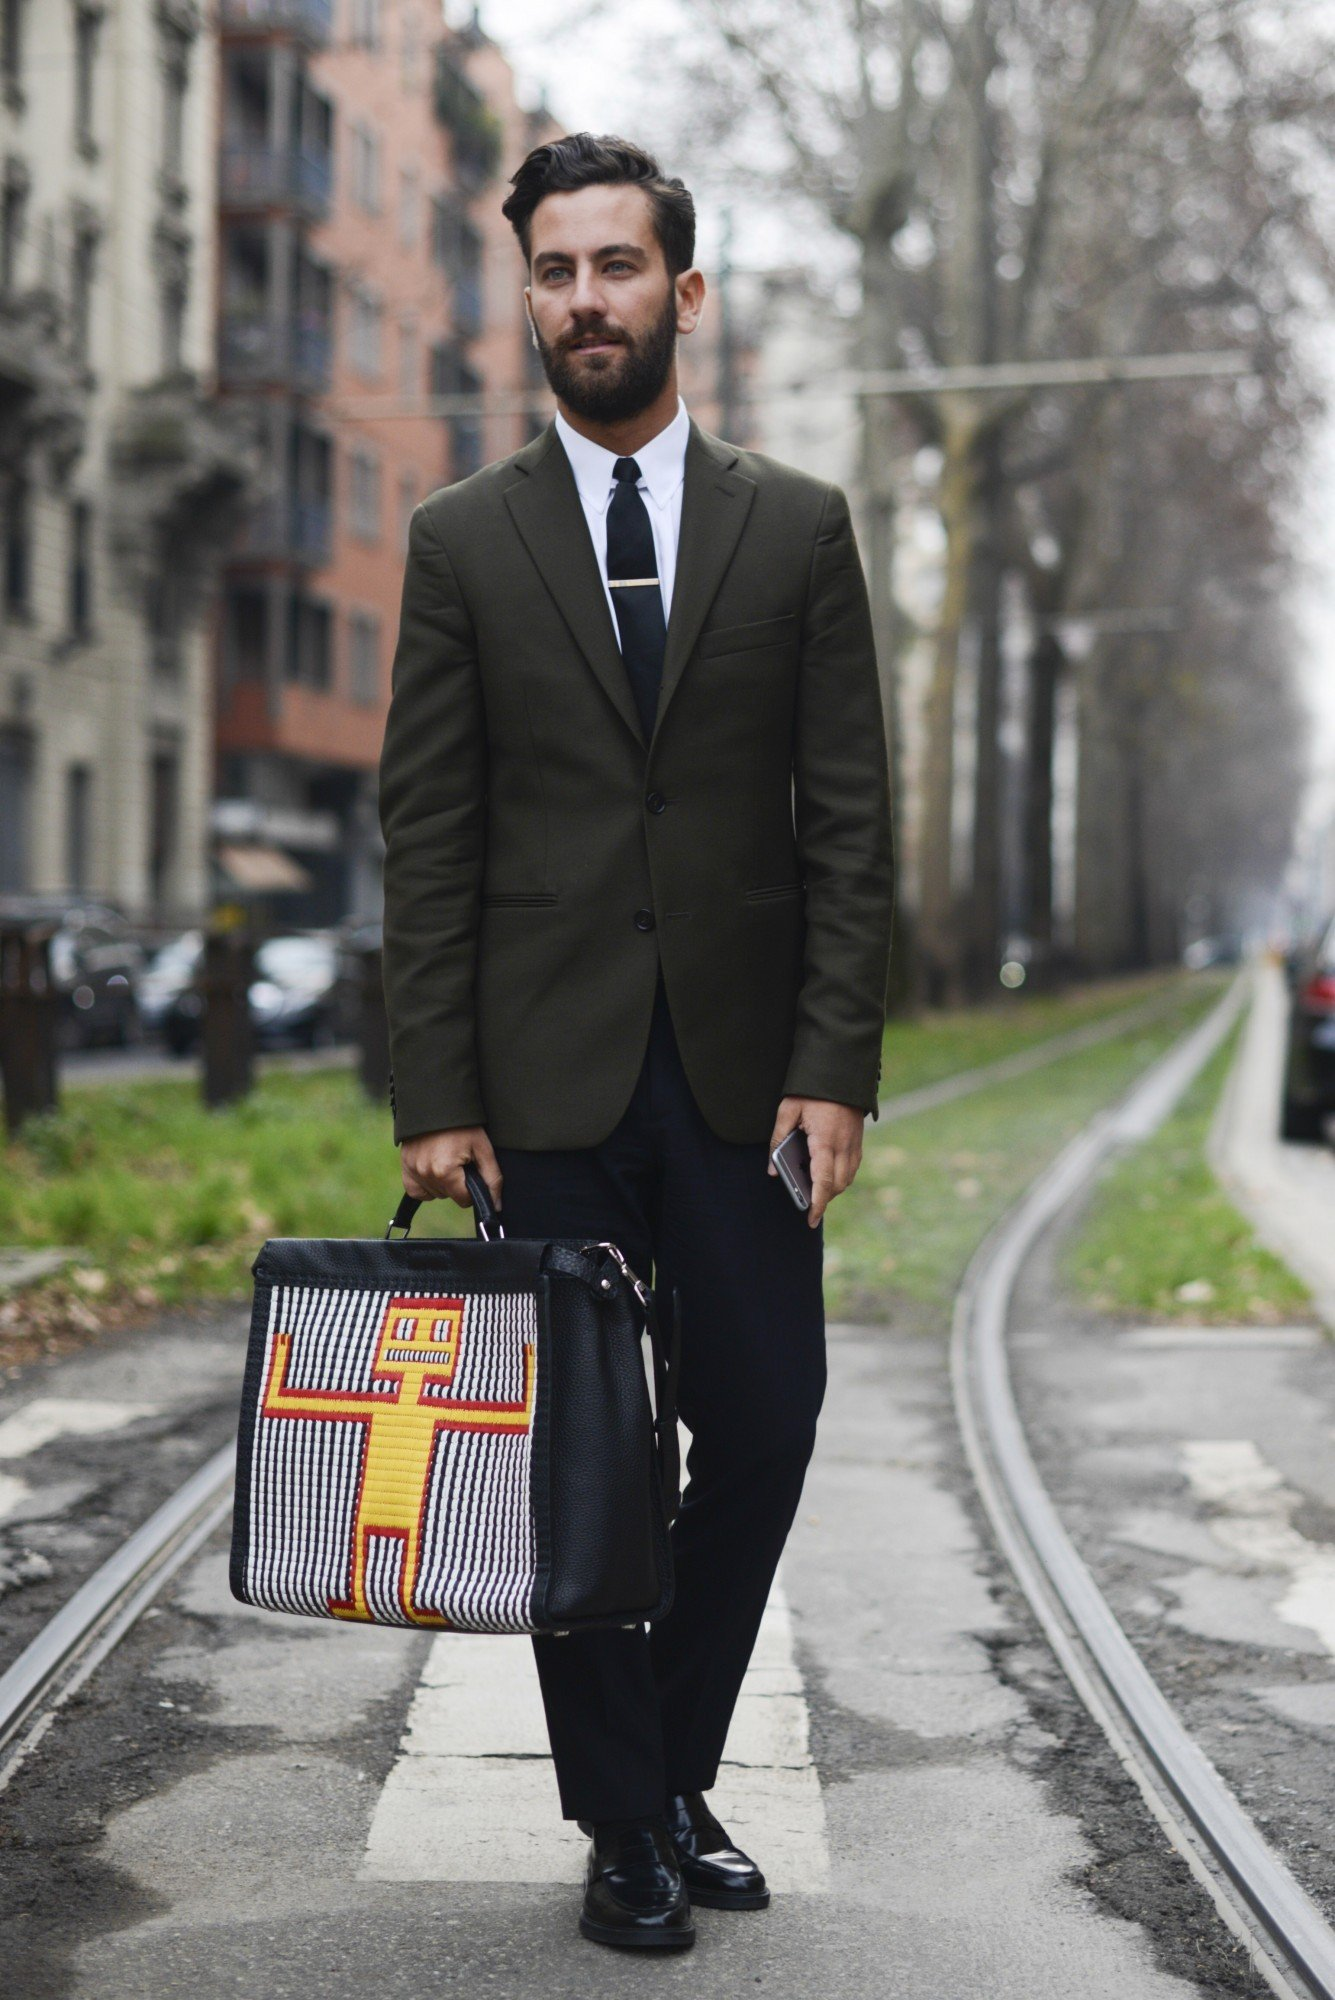 MILAN, ITALY - JANUARY 19: Matthew Zorpas poses wearing an Acne suit and Fendi bag during day 3 of Milan Menswear Fashion Week Fall/Winter 2015/2016  on January 19, 2015 in Milan, Italy.  (Photo by Vanni Bassetti/Getty Images)